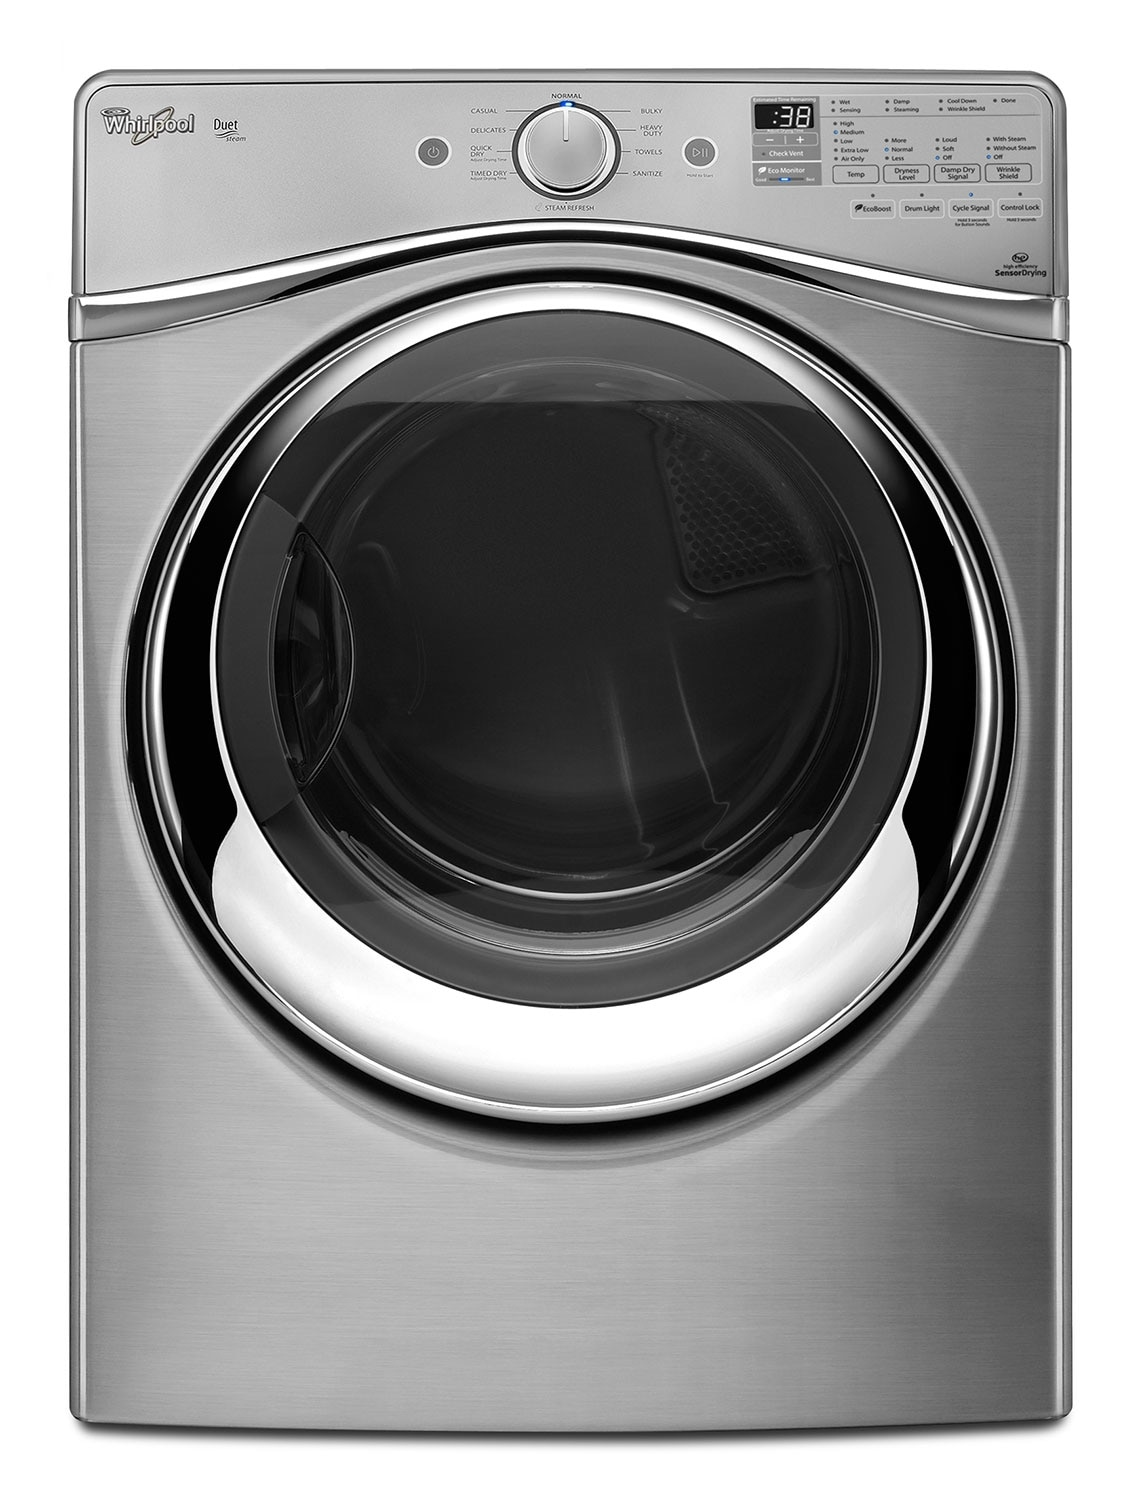 Whirlpool Dryer (7.4 Cu. Ft.) YWED95HEDU